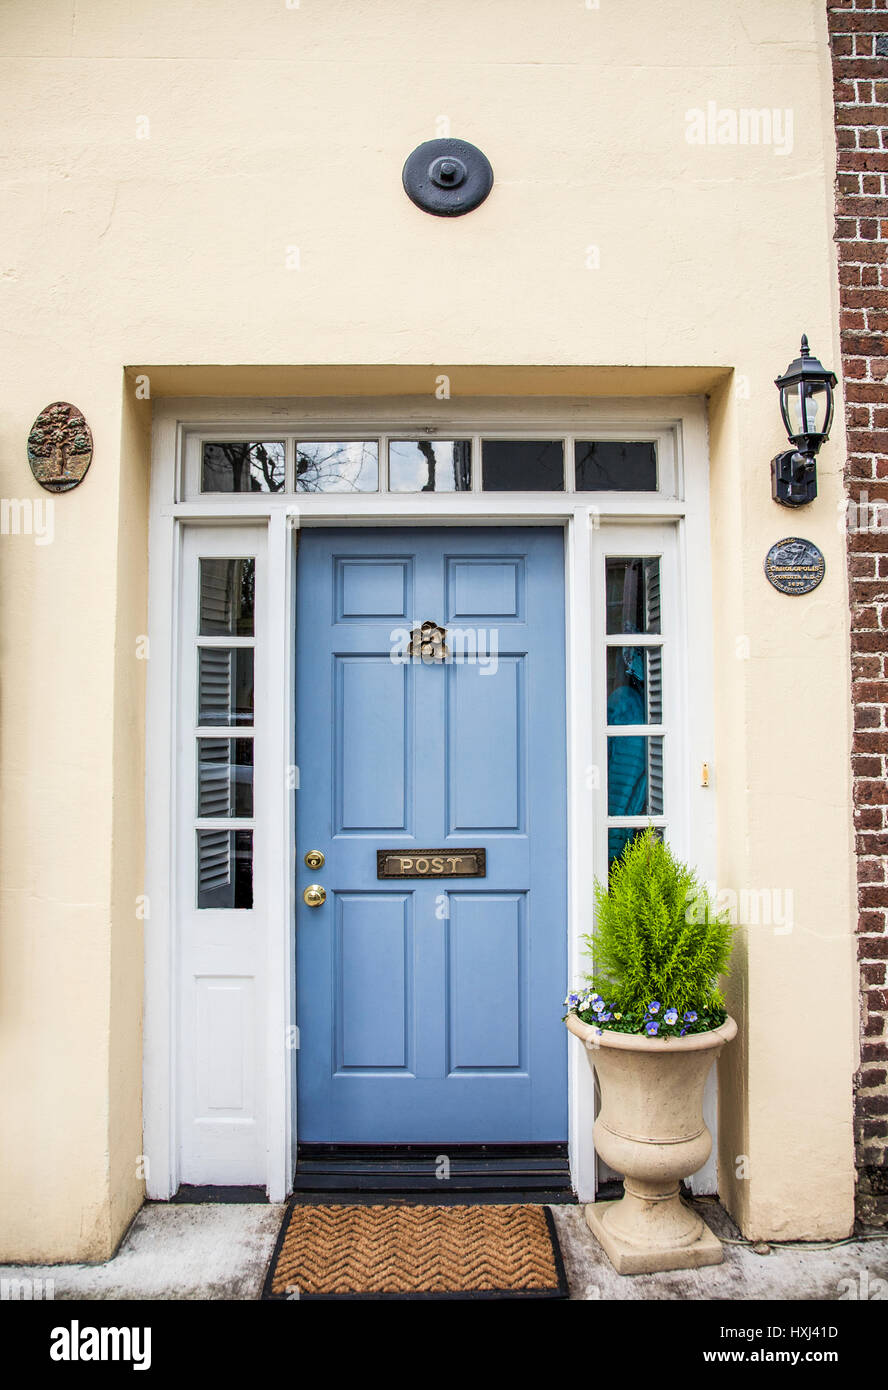 Bon Vintage Light Blue Door With A Front Door Knocker And Letter Slot,  Charleston, South Carolina, USA